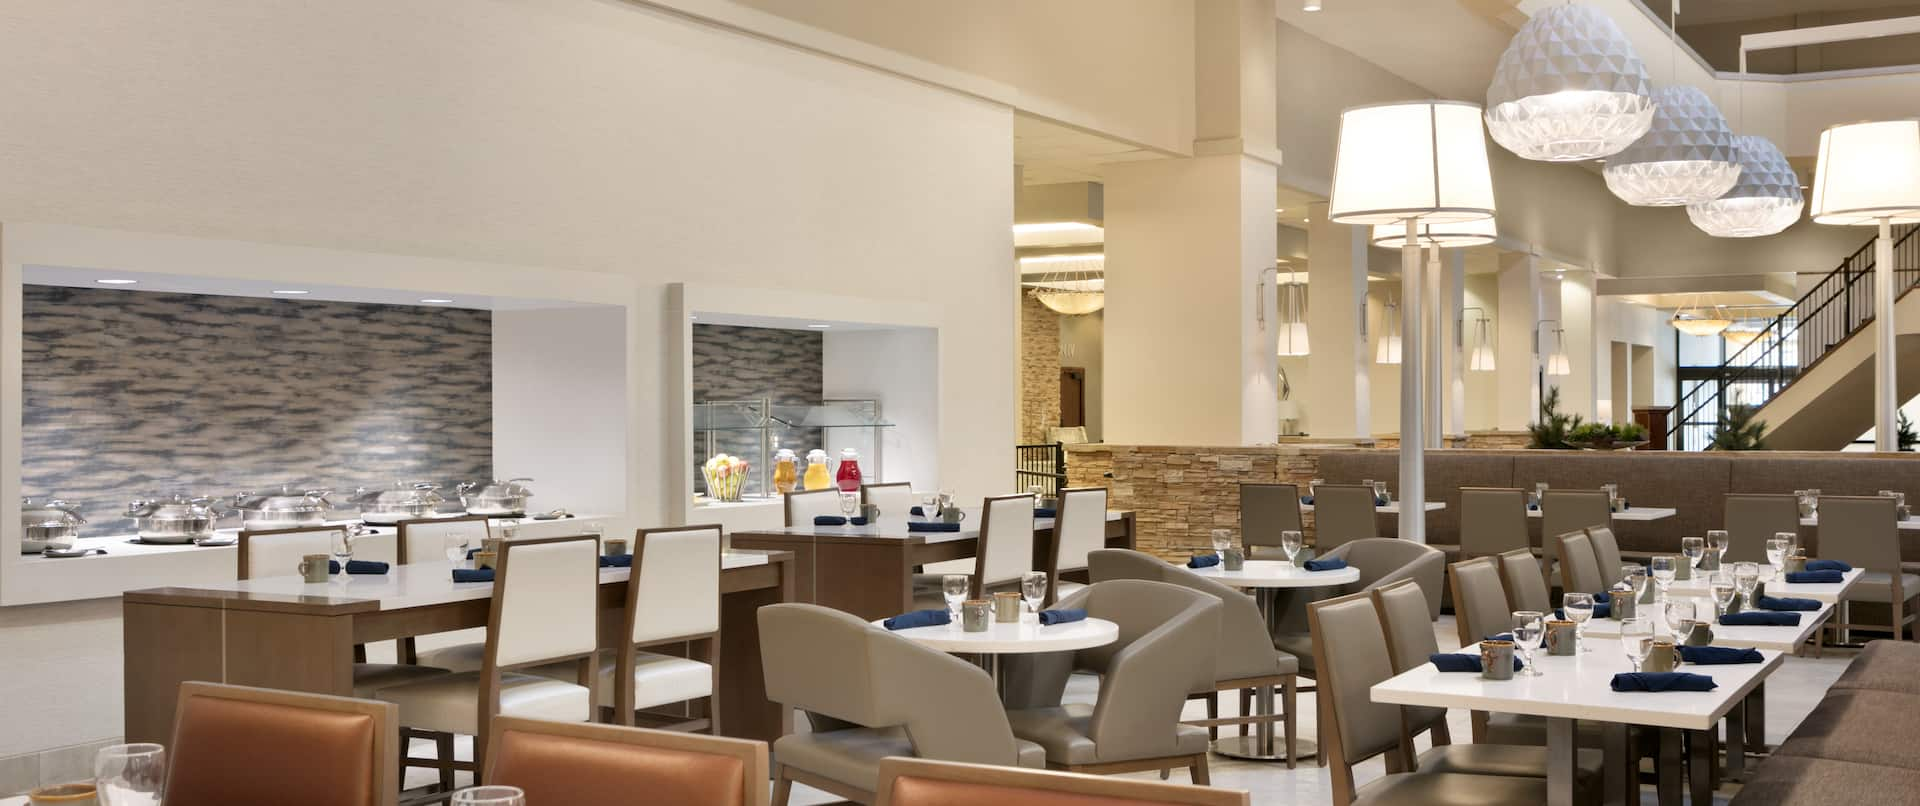 Restaurant Dining Area with Tables and Chairs